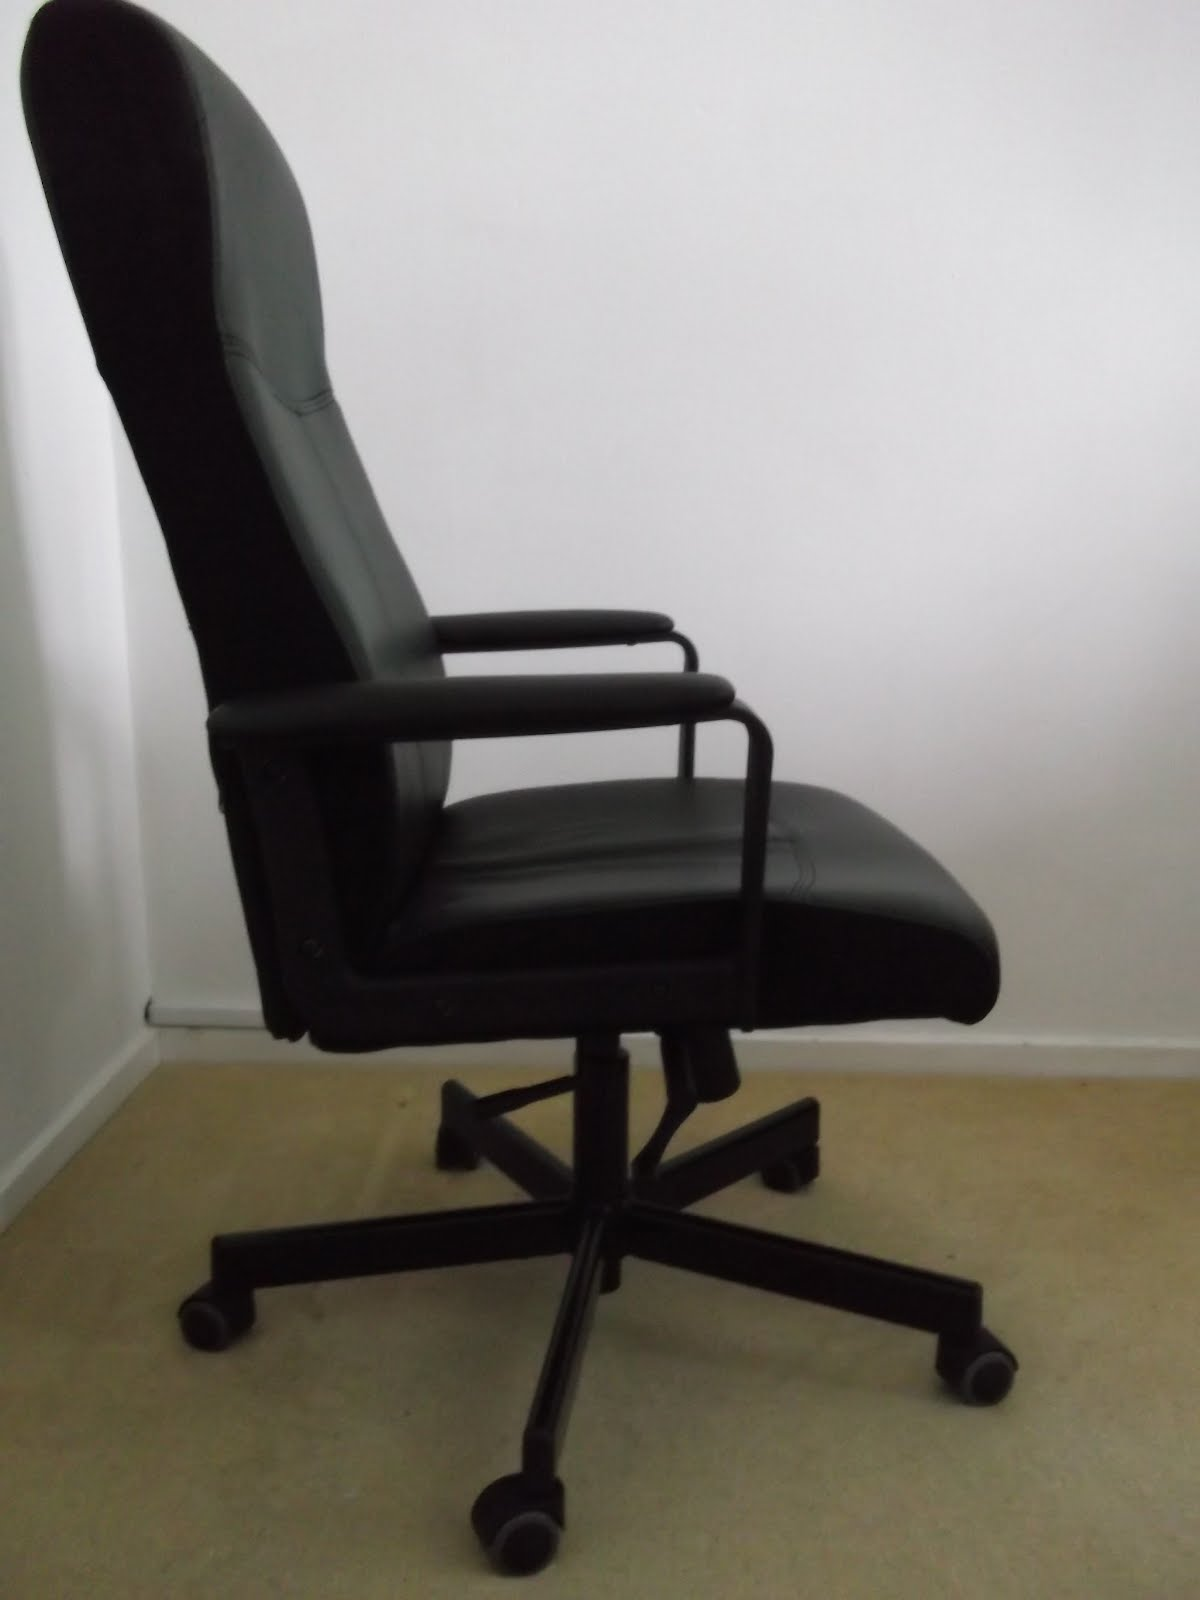 Exceptionnel Ikea Malkolm Office Swivel Chair